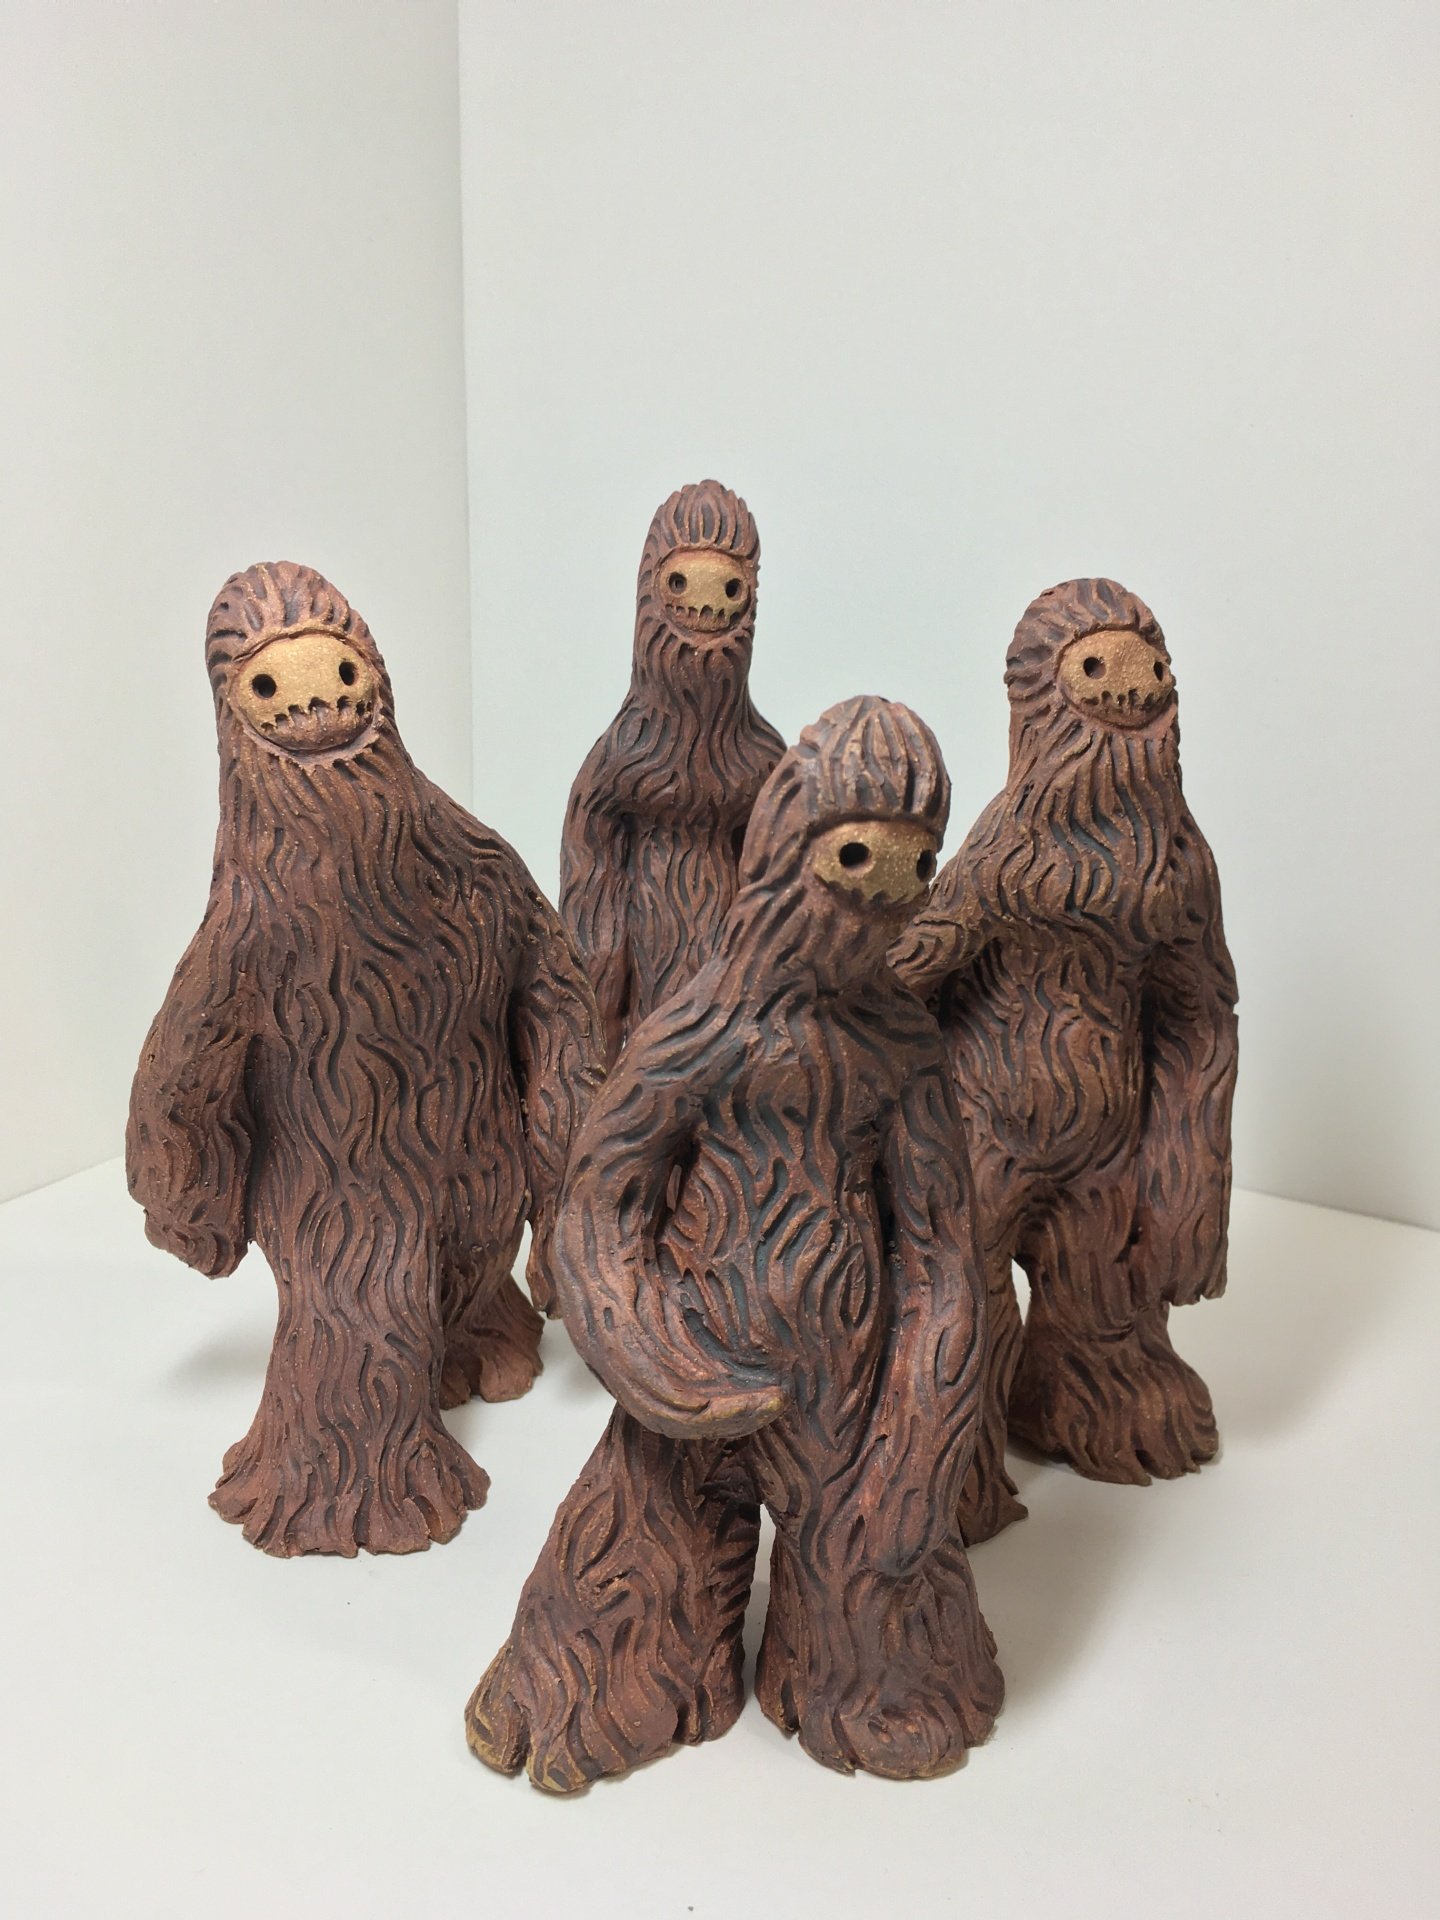 wookie creature, fantasy creature, science fiction sculpture, zack rudy